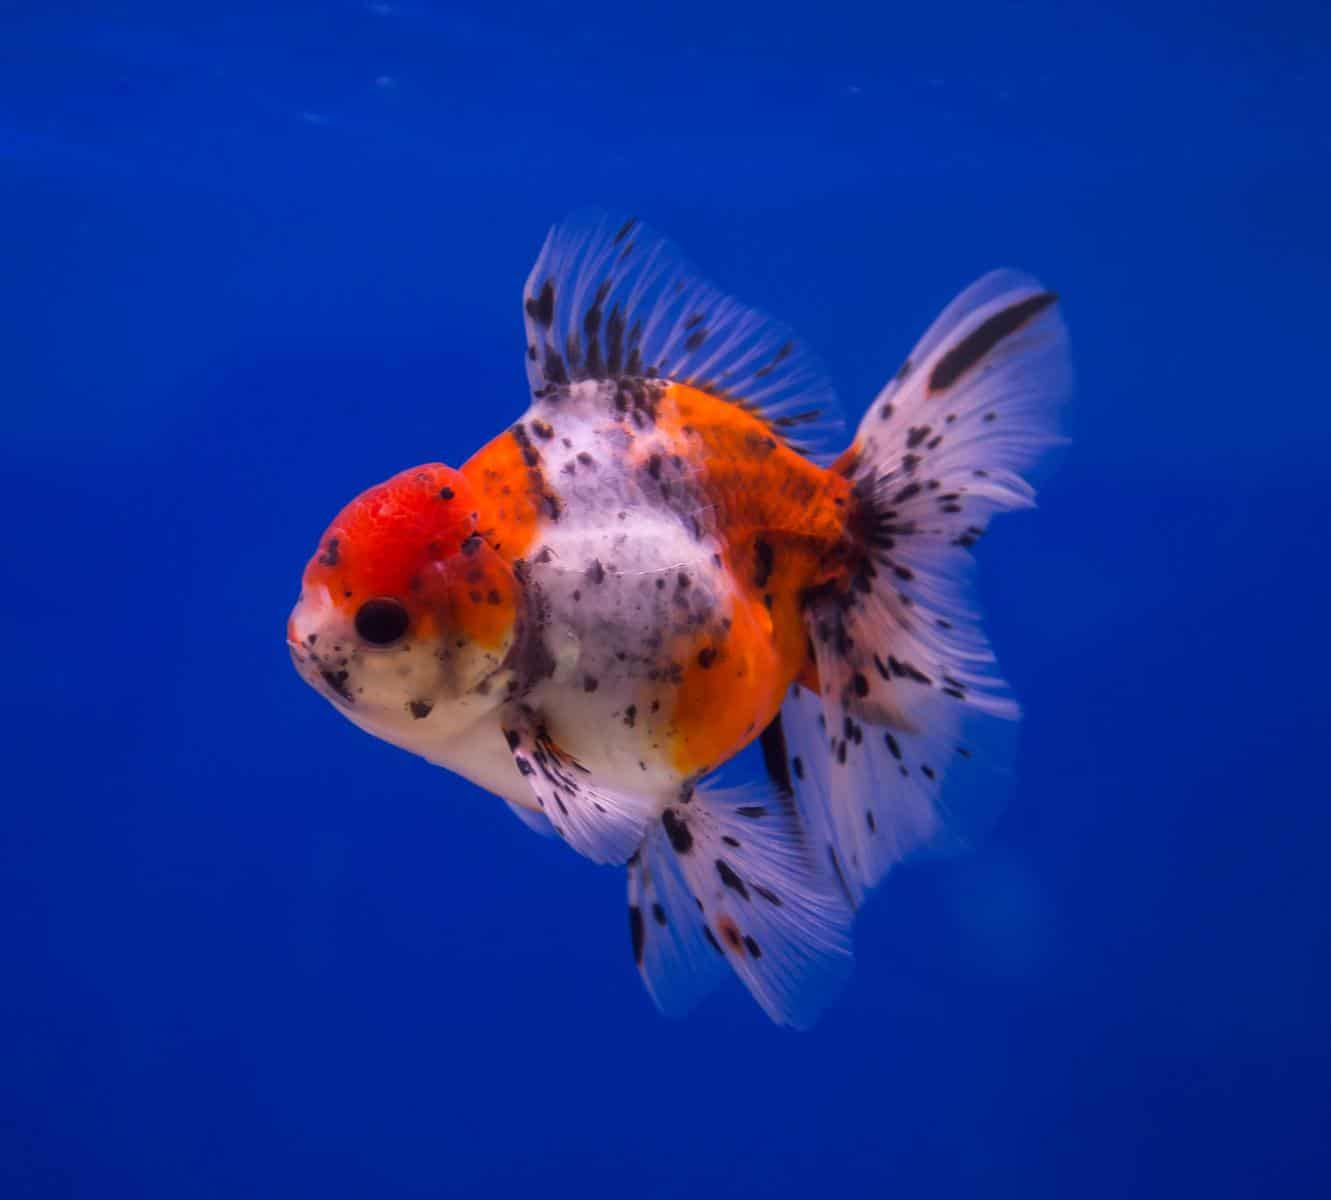 calico goldfish in a blue background